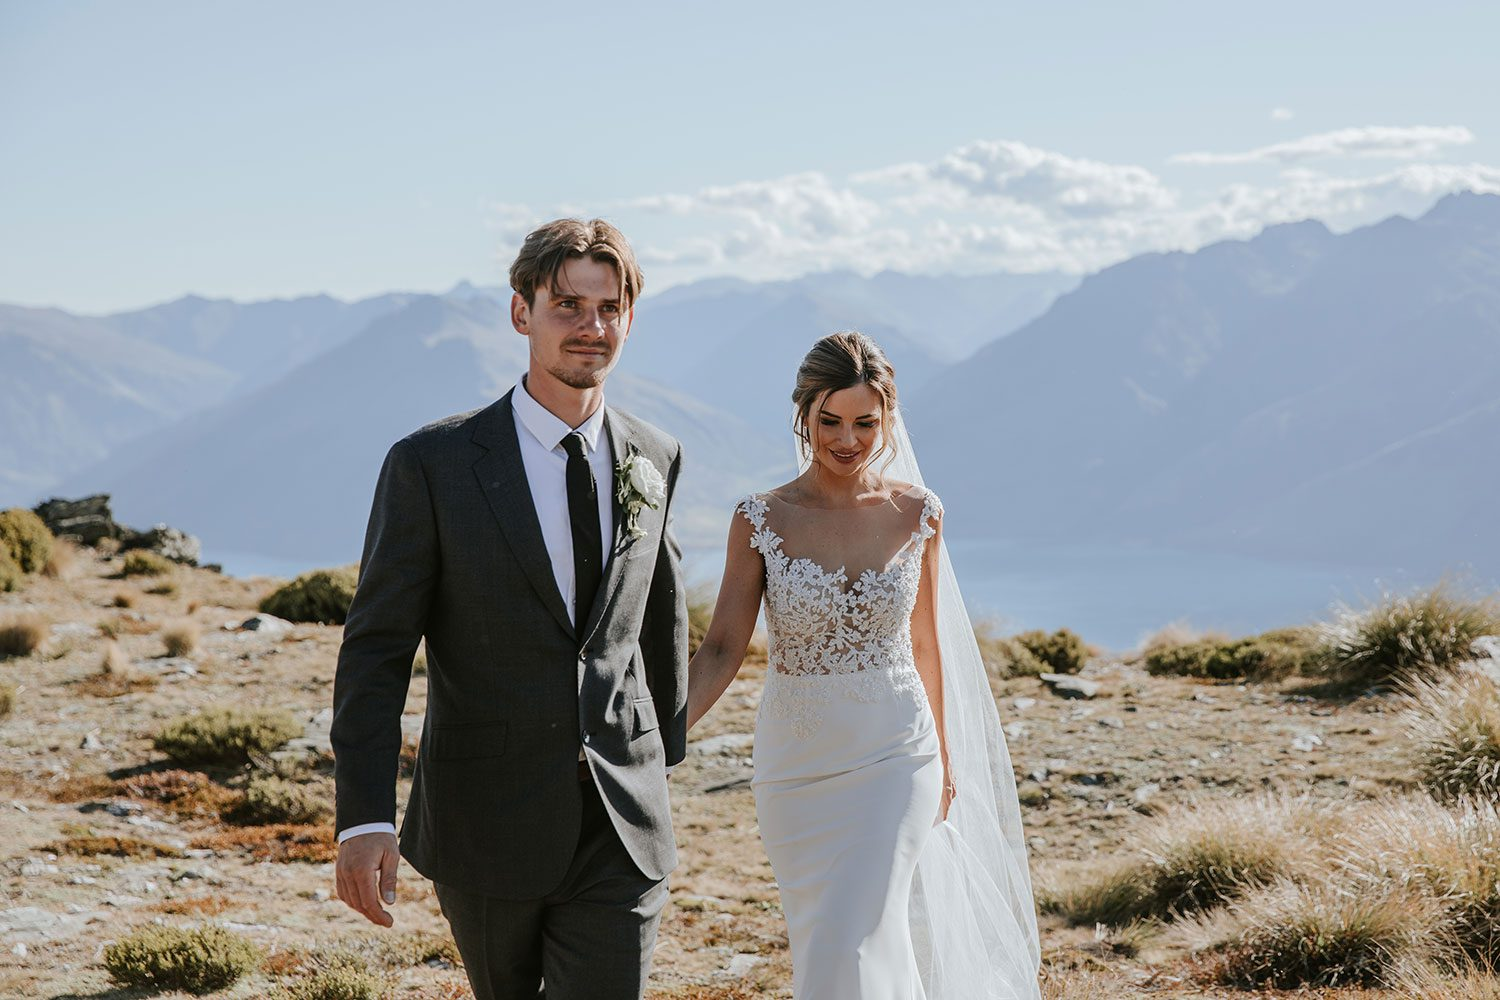 Bride wearing bespoke bridal gown with richly beaded lace over sheer tulle bodice and low back from Auckland wedding dress designer Vinka designs - walking with groom